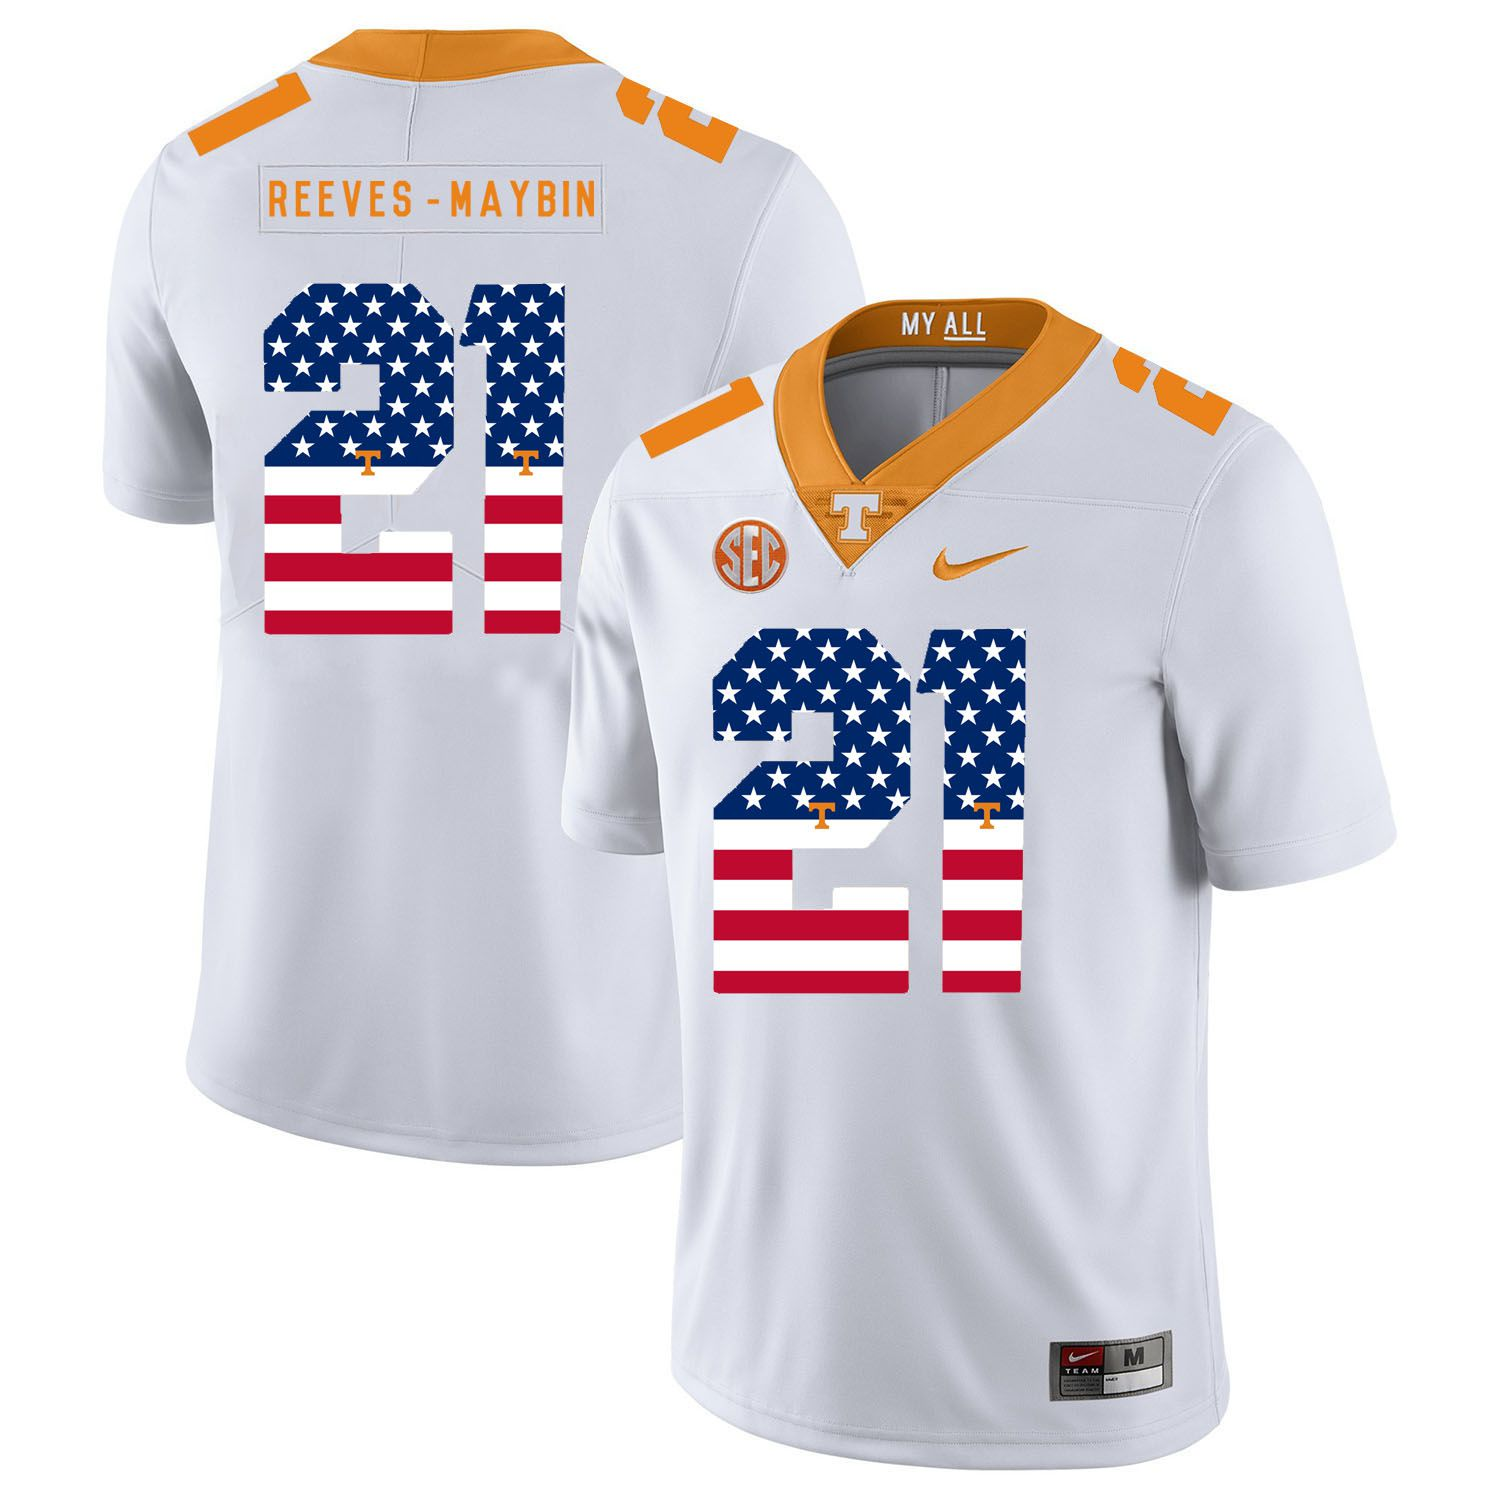 feab73c950e Men Tennessee Volunteers 21 Reeves-maybin White Flag Customized NCAA Jerseys